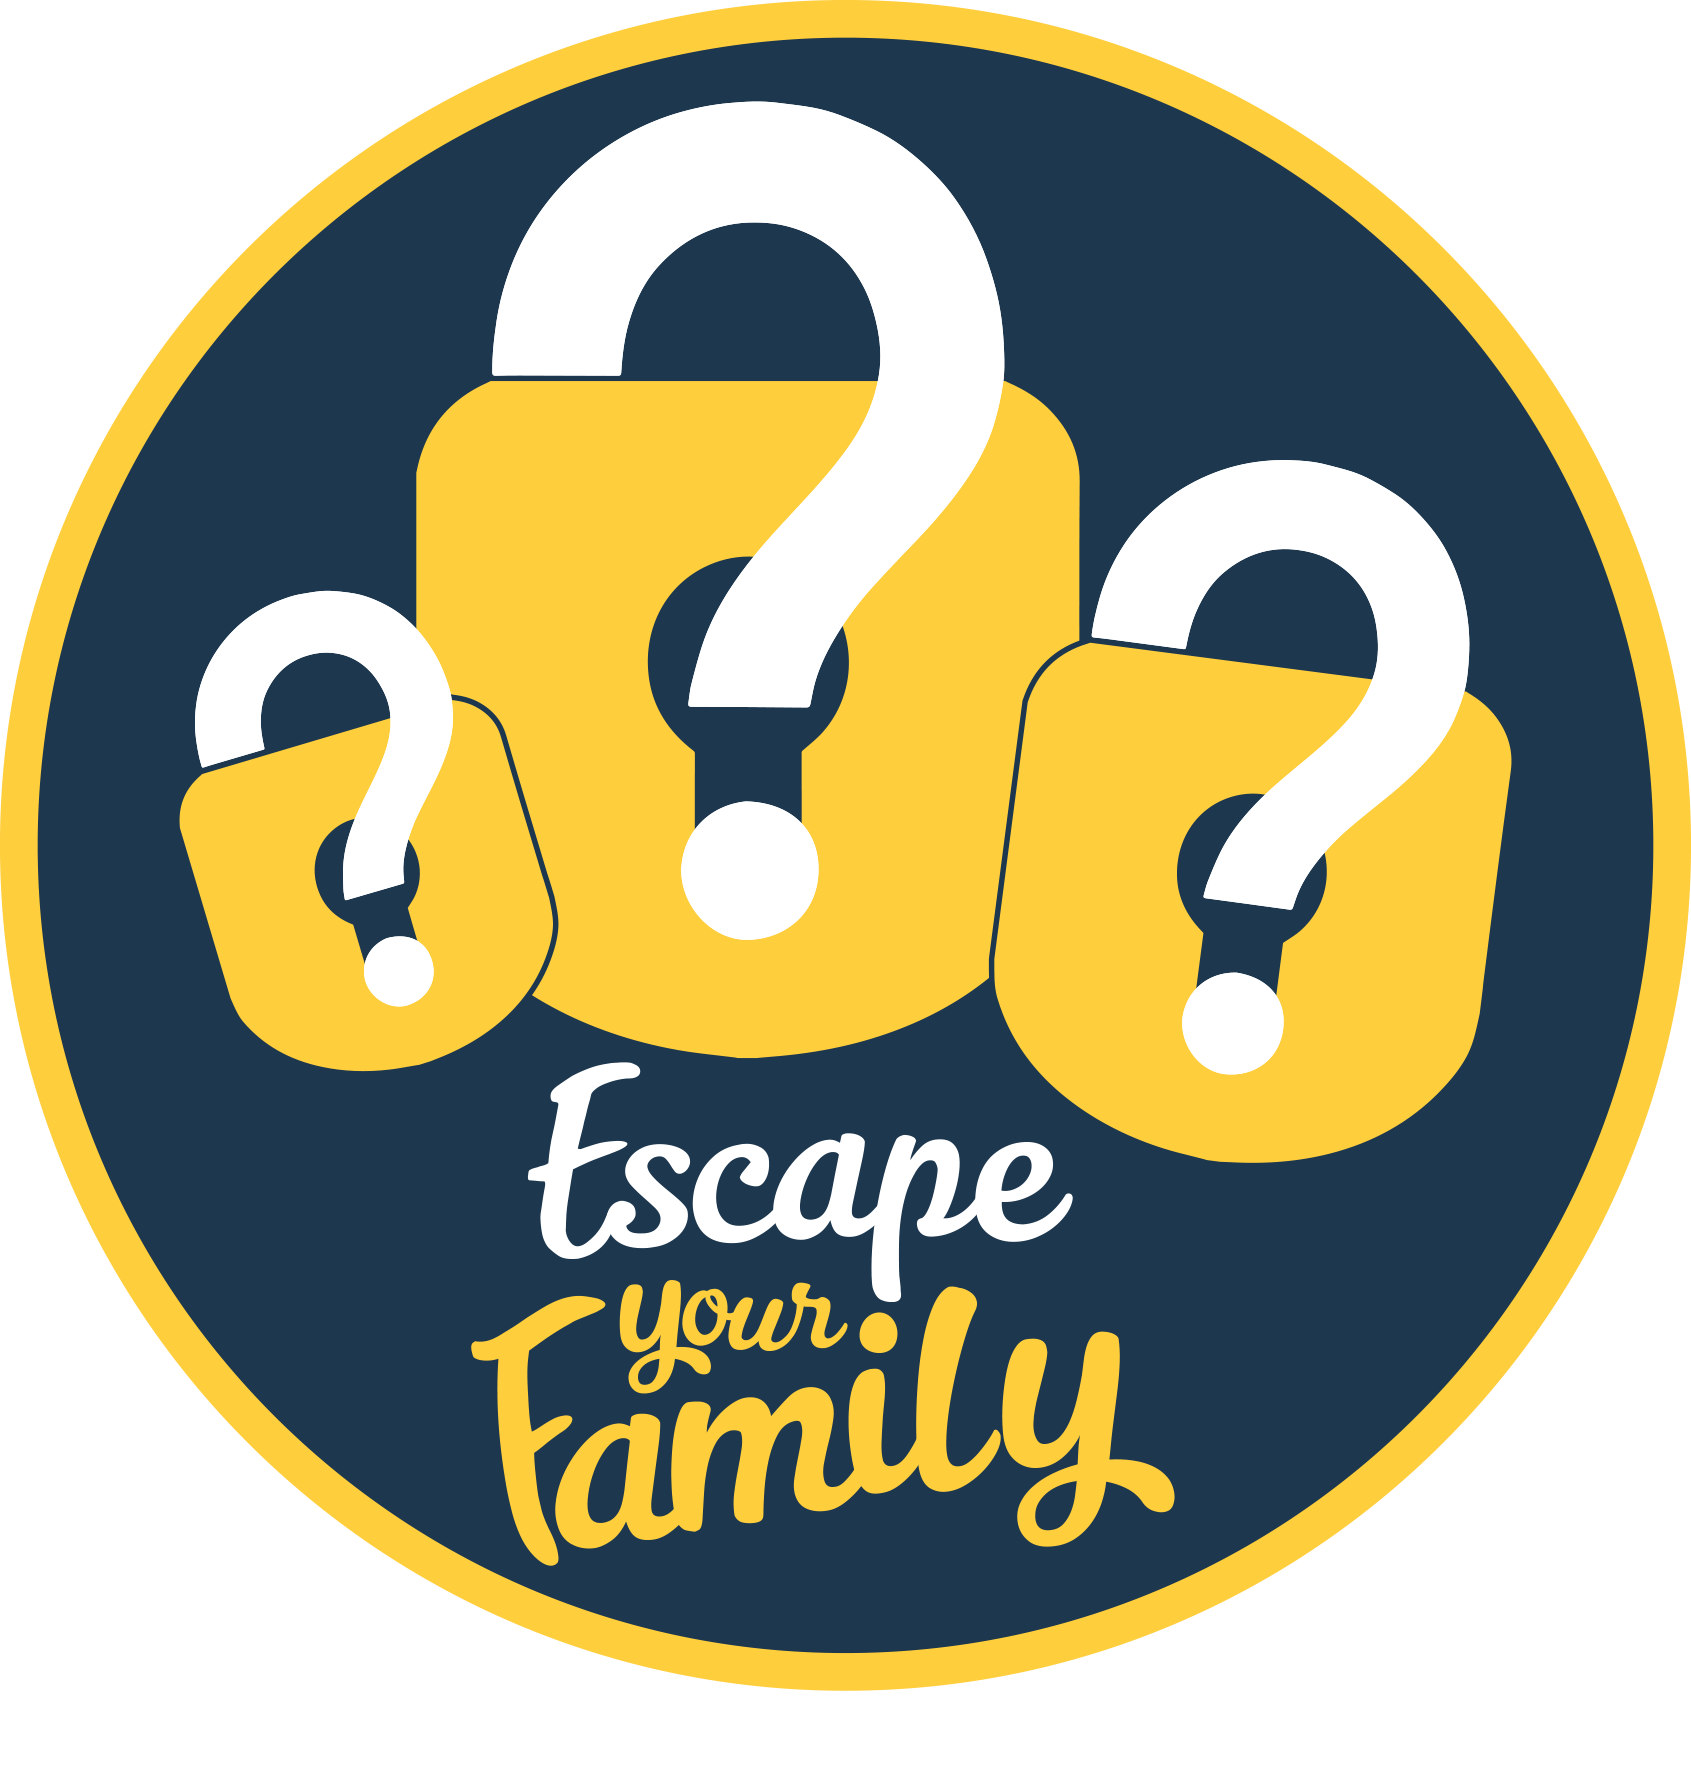 logo_EscapeYourFamily-fond-fonce